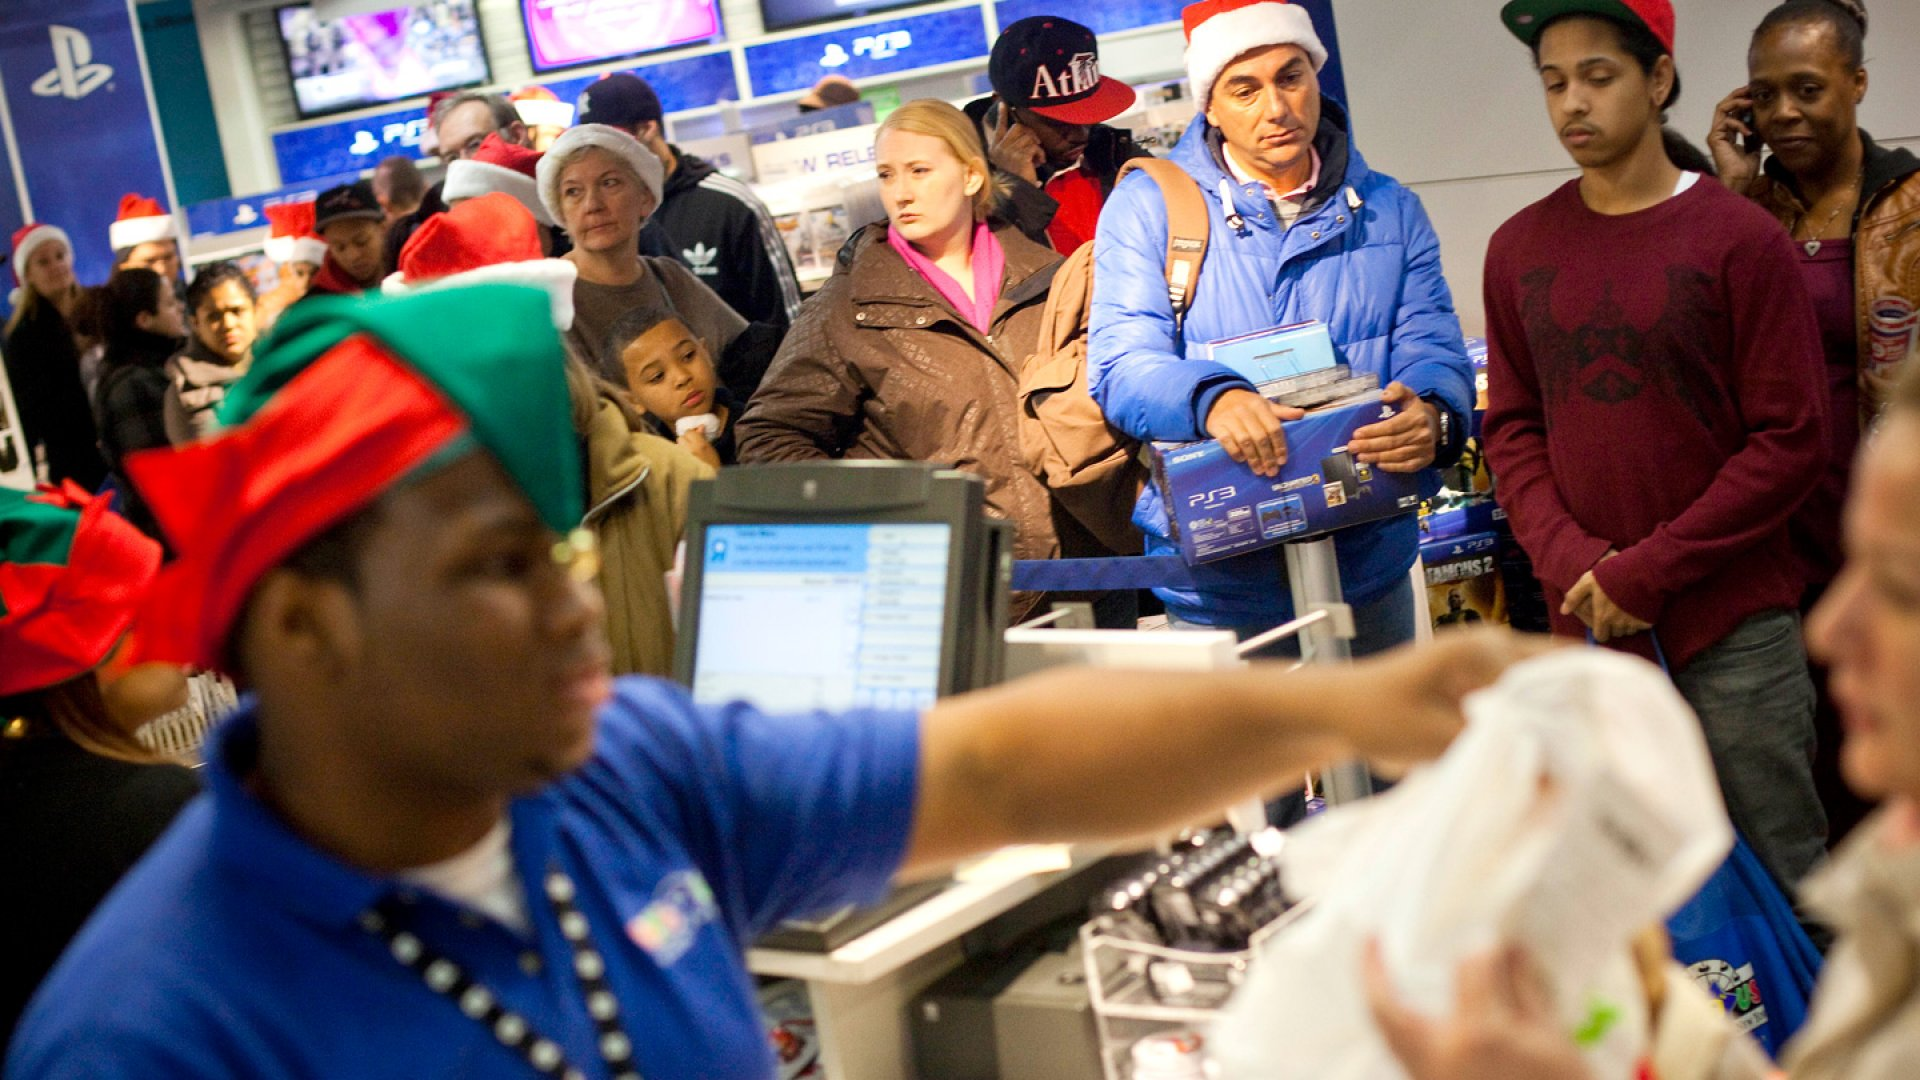 """Black Friday bargain hunters wait in line at Toys """"R"""" Us, which opened at 9 p.m. Thanksgiving Day, November 24, 2011, in New York City."""